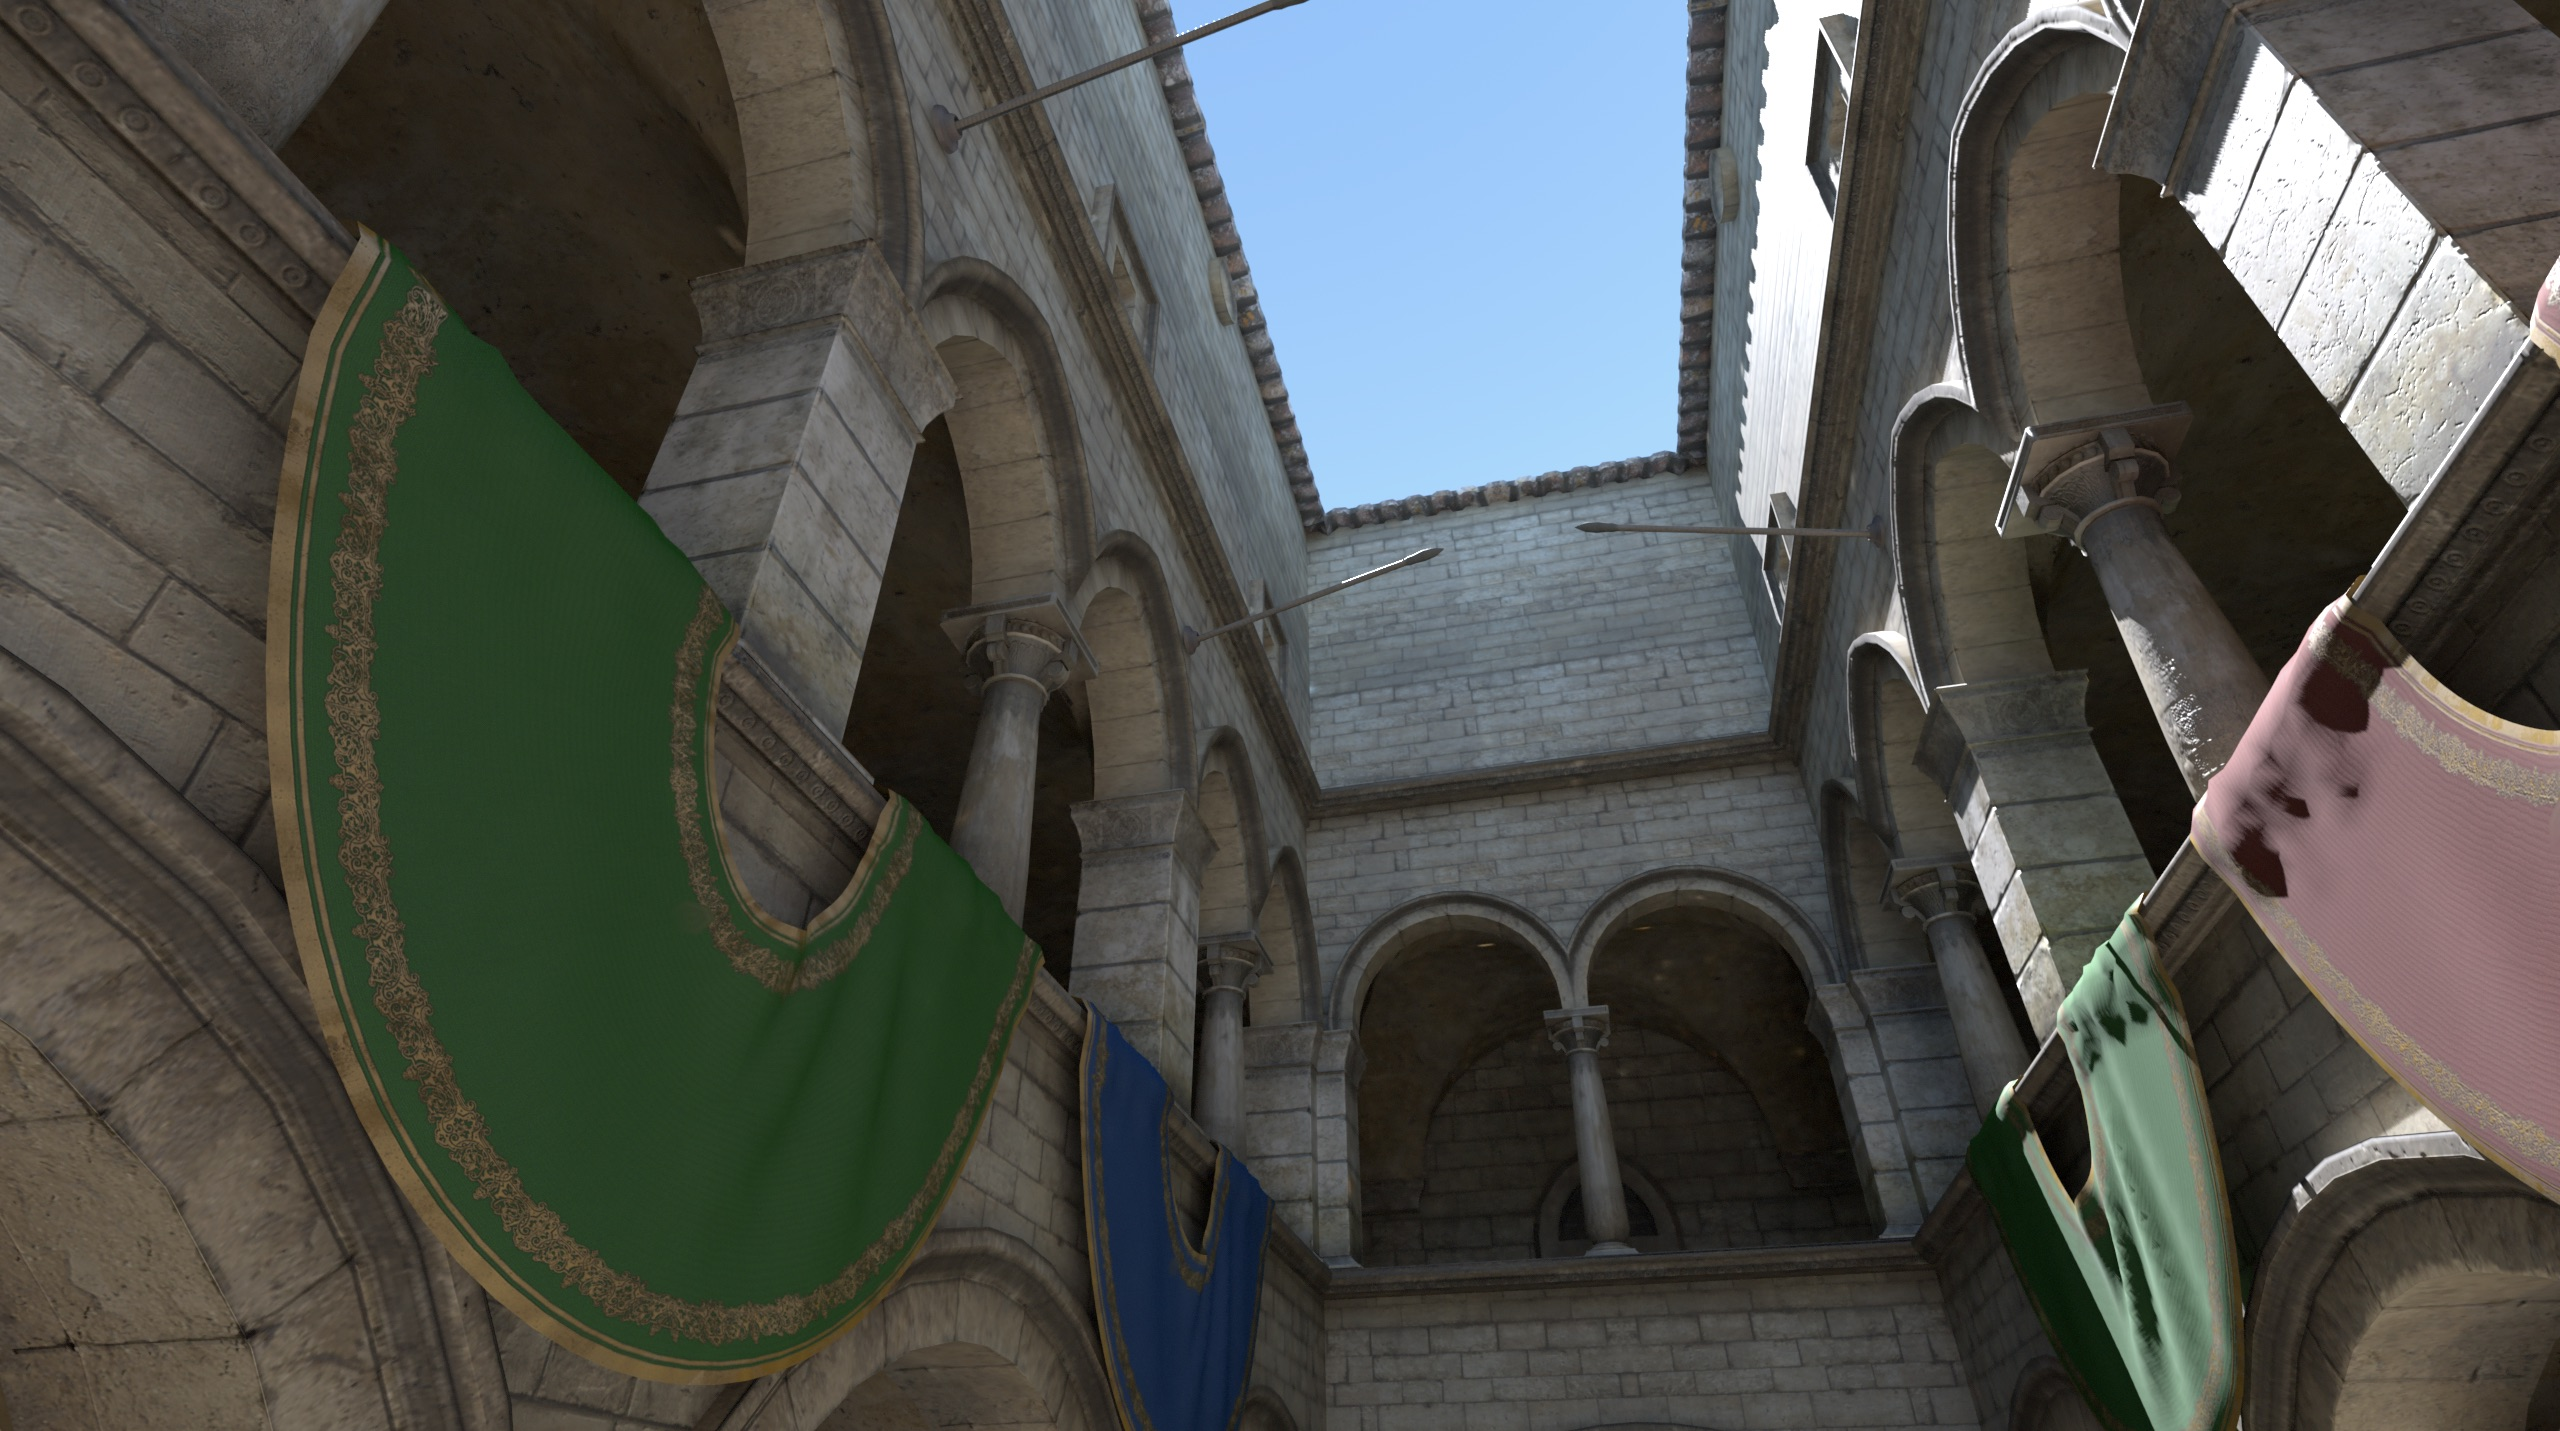 Sponza rendered using a hemispherical Ambient Dice lightmap for diffuse and specular